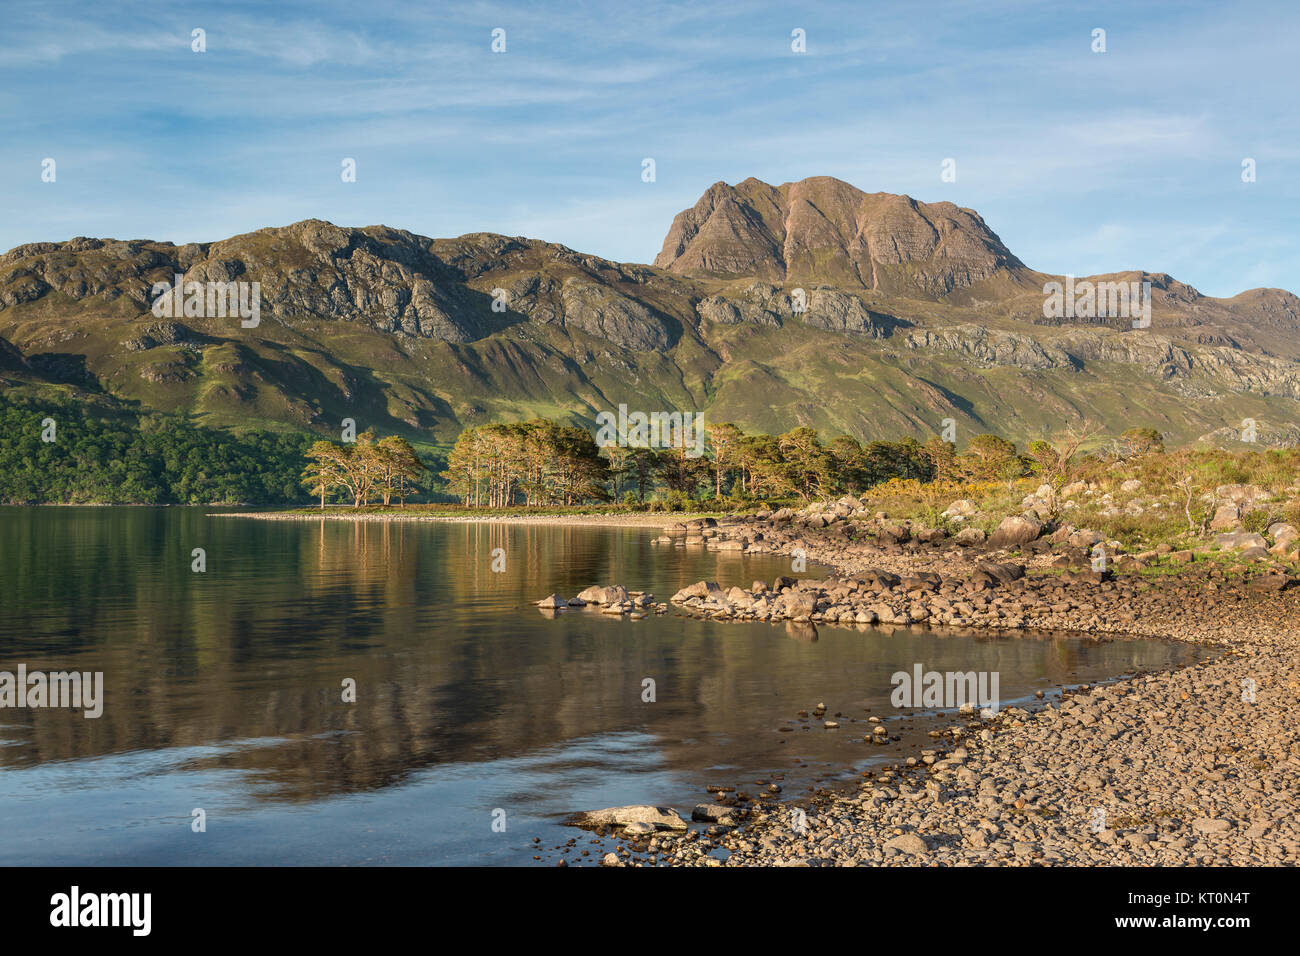 Slioch and Loch Maree in the Scottish Highlands, Scotland, UK - Stock Image